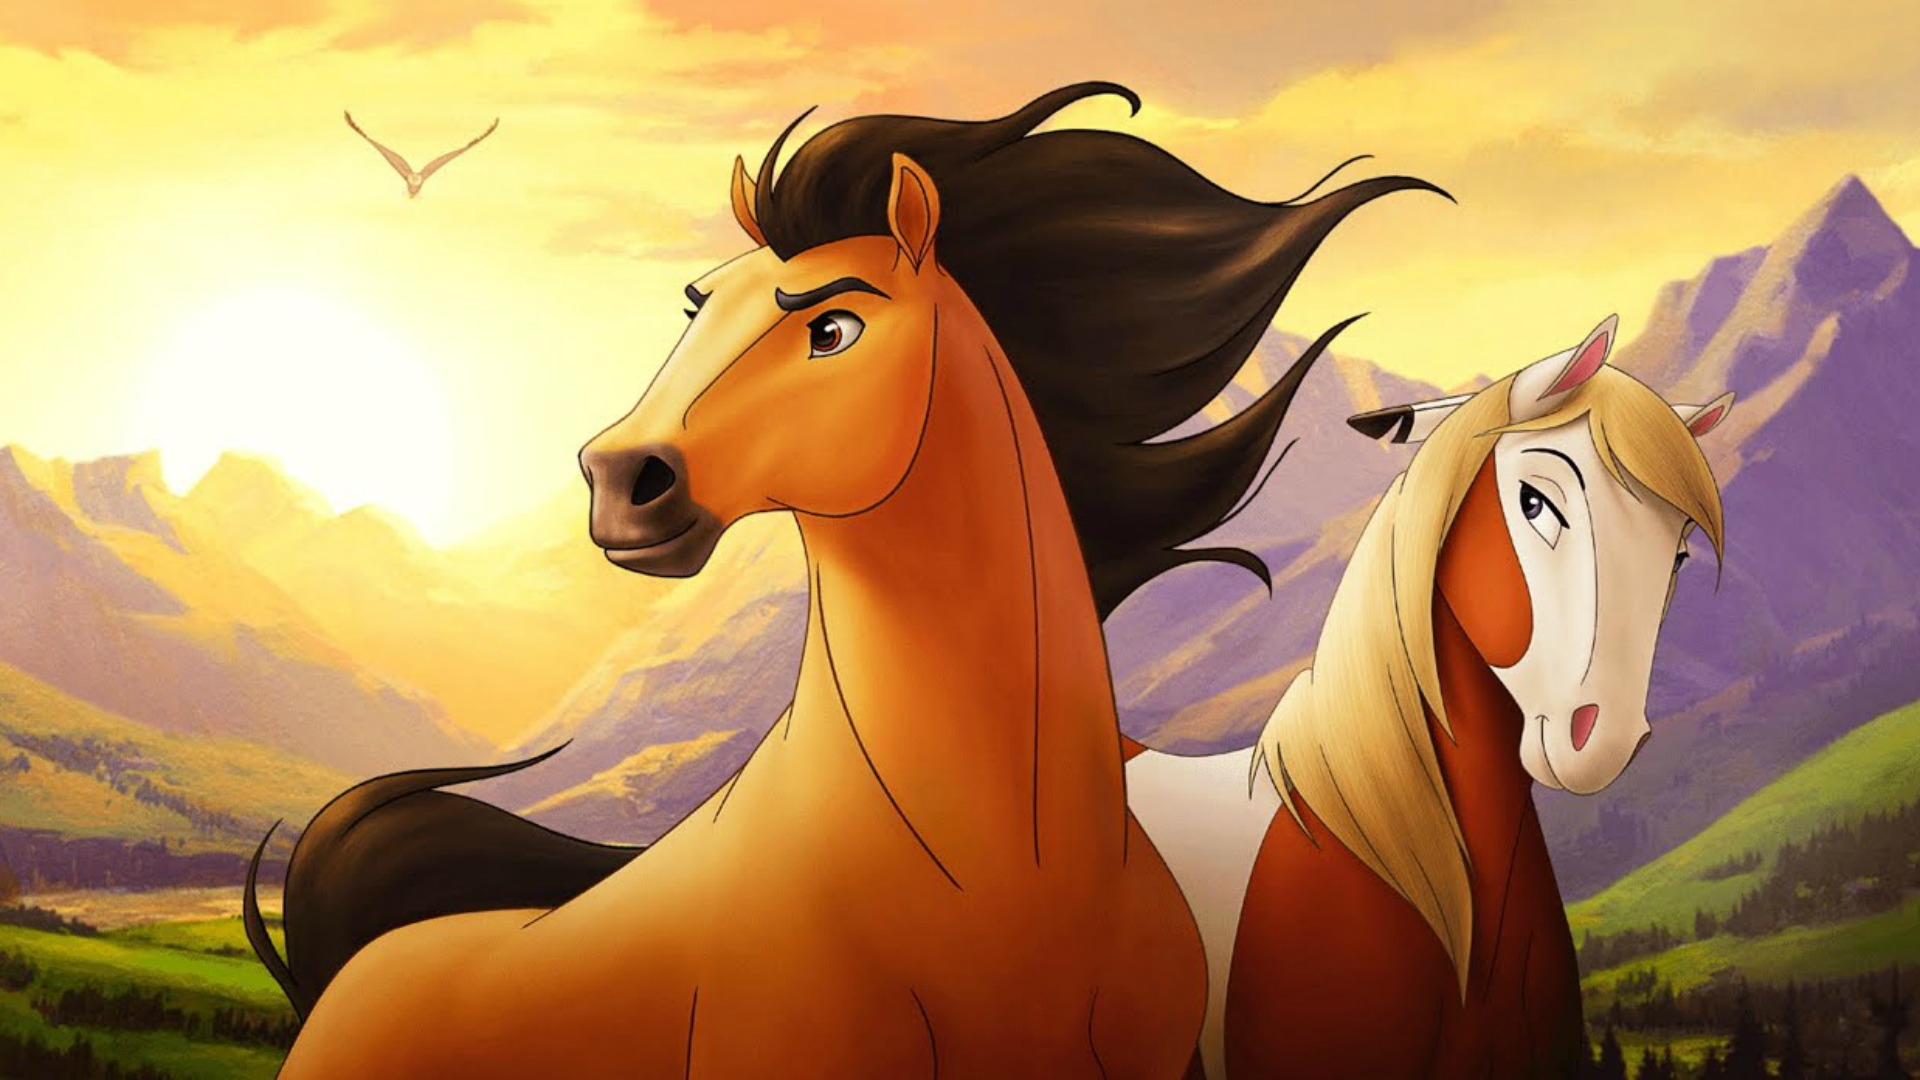 The greatest animation films not made by Disney